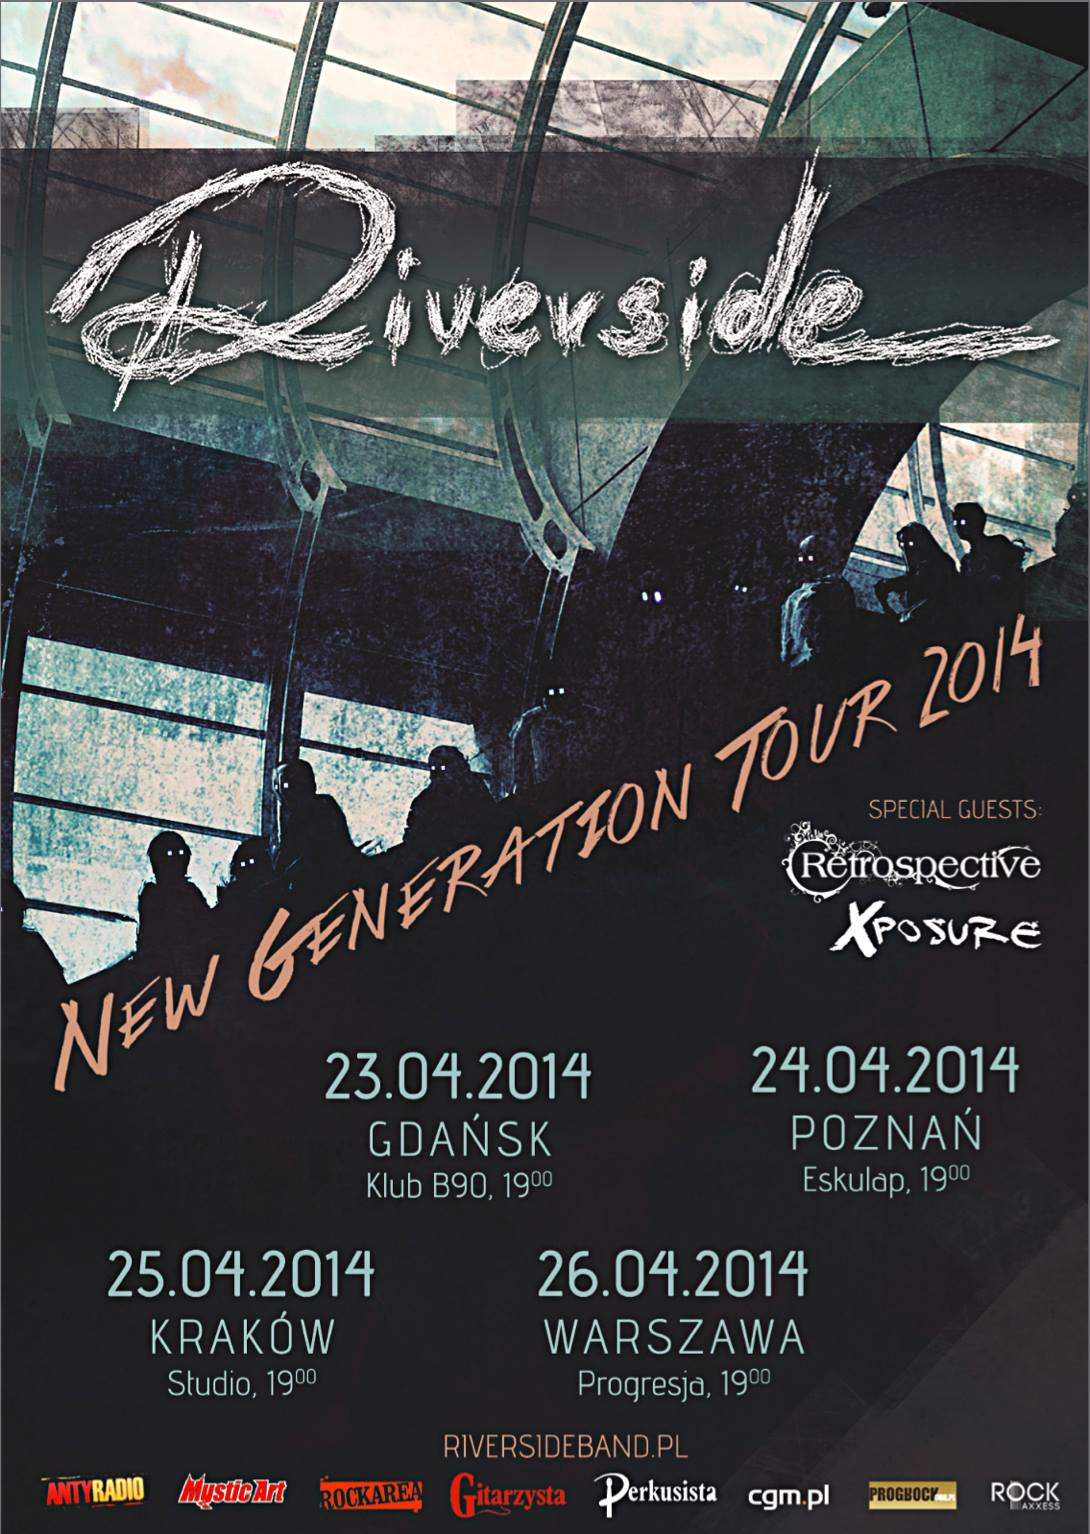 Riverside - New Generation Tour 2014